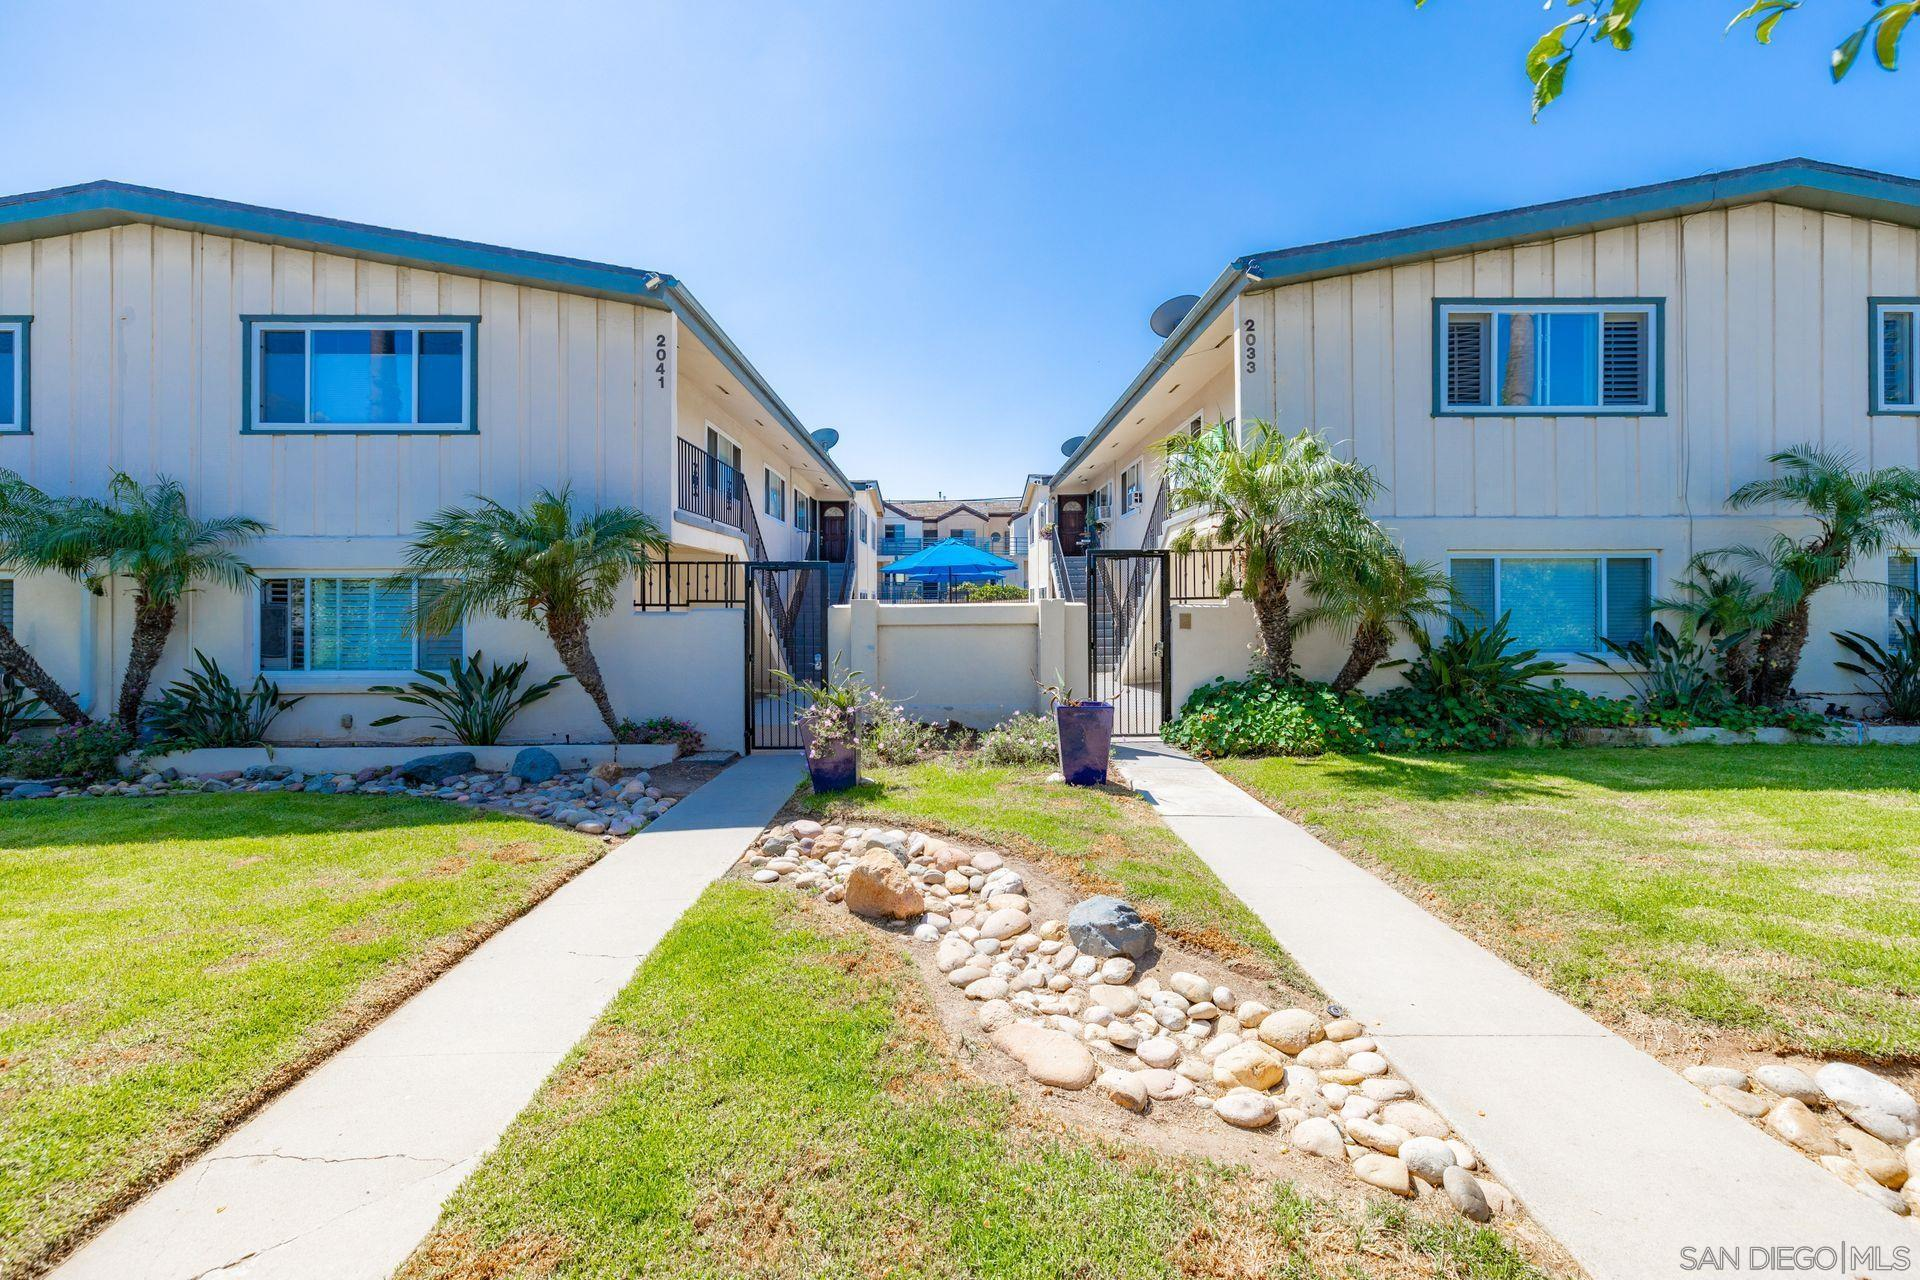 2045 Oliver Ave, San Diego, CA 92109